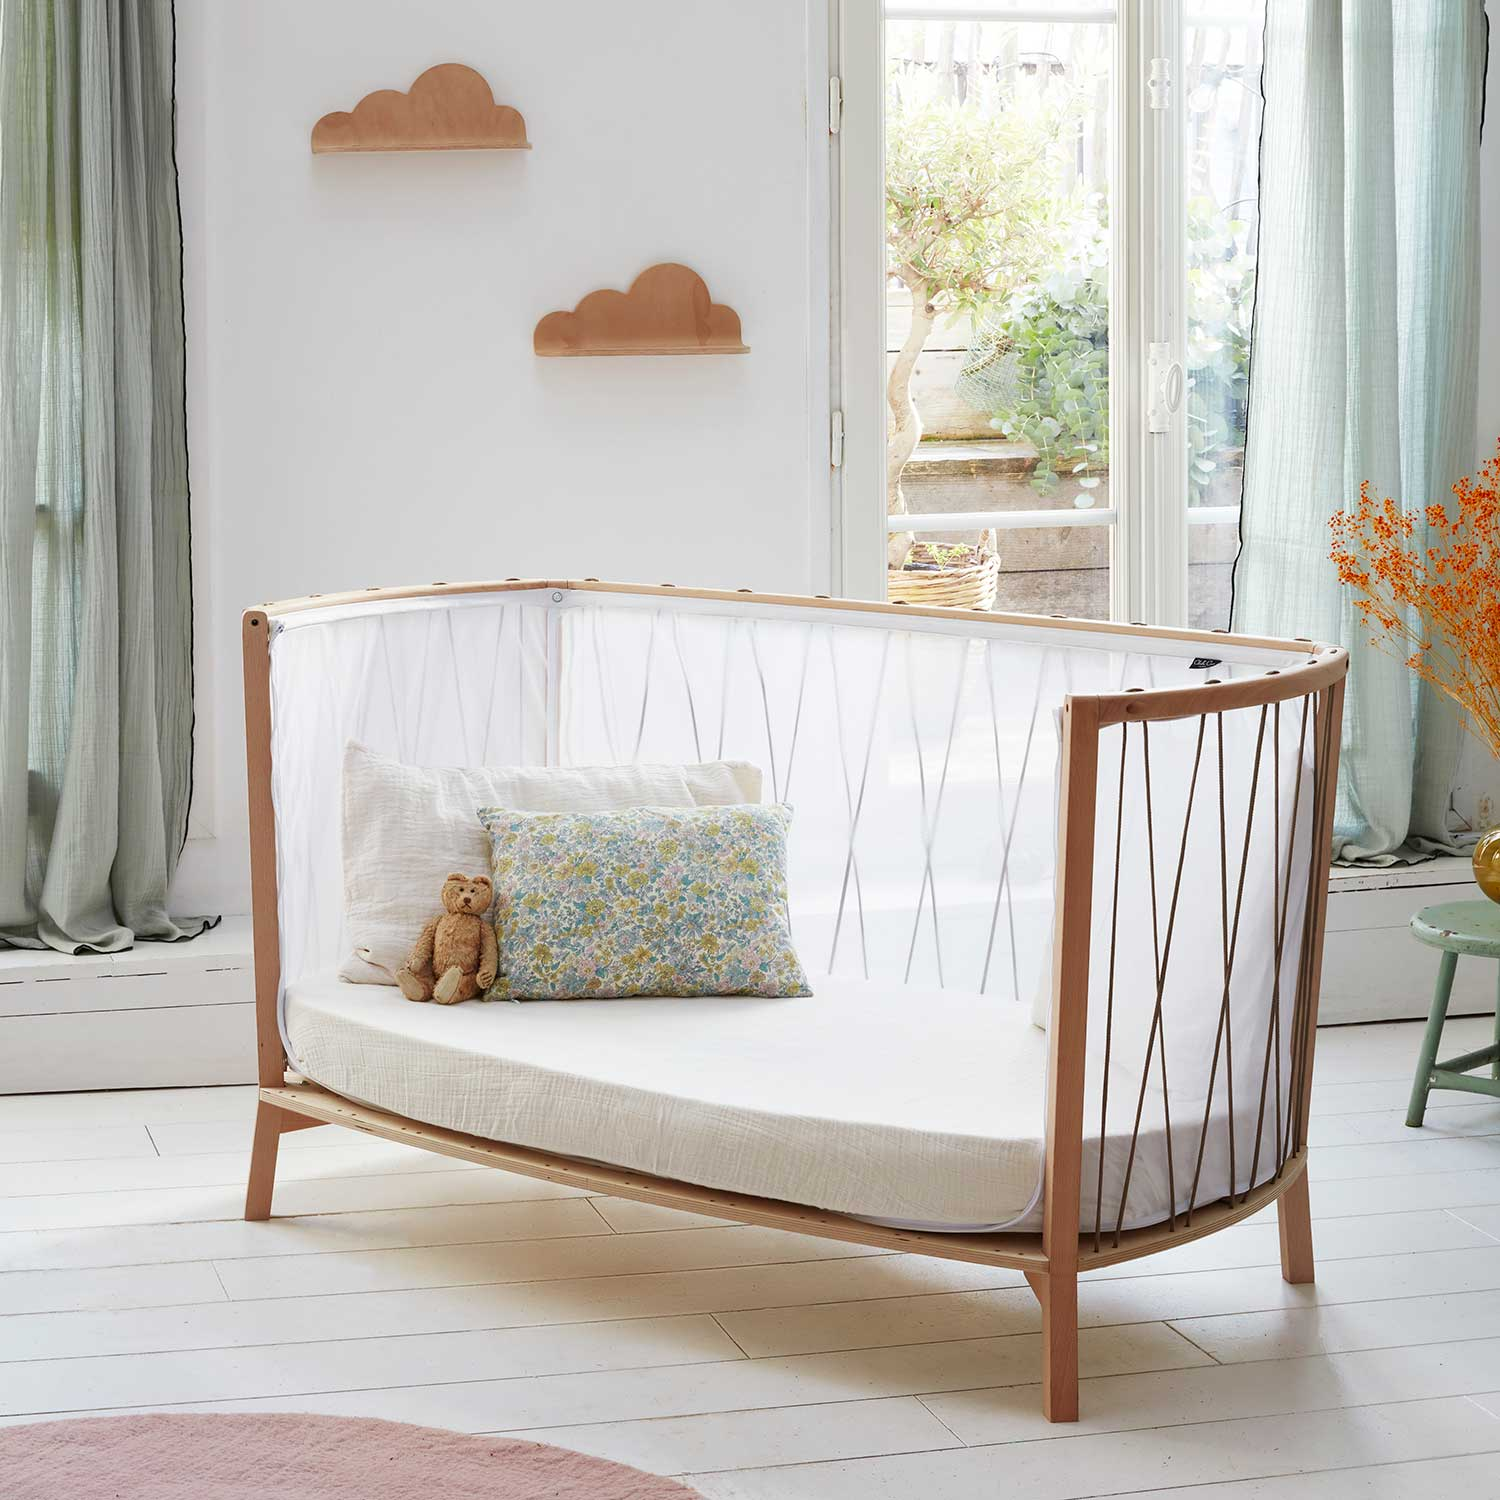 Charlie Crane Childs Bed, the Kimi with open side